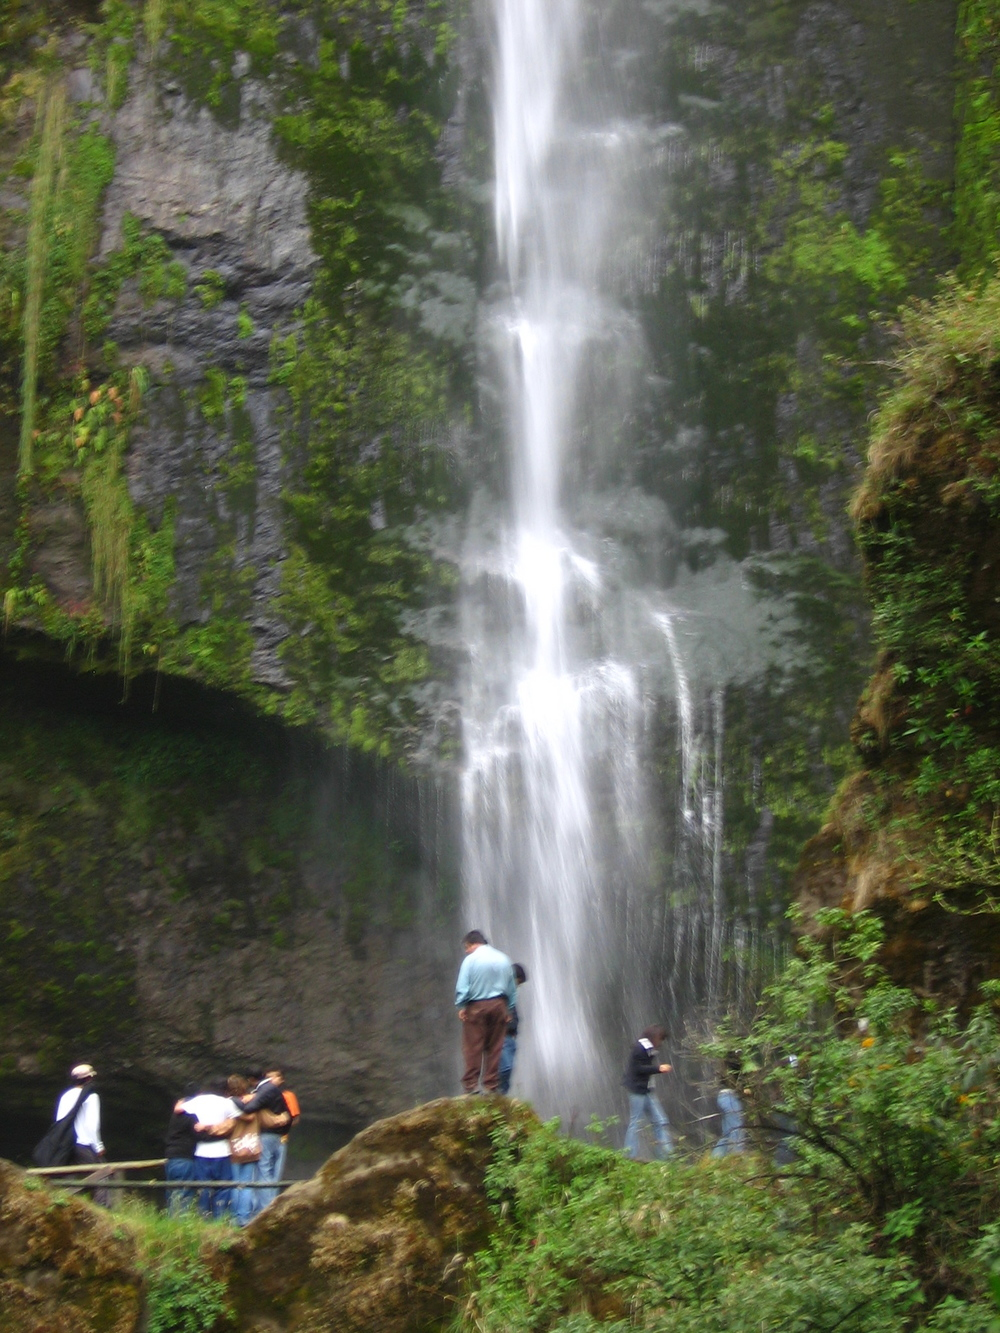 We spread the ashes of our dear friend Pedro Vintimilla who died in a needless bus crash at the base of this waterfall!